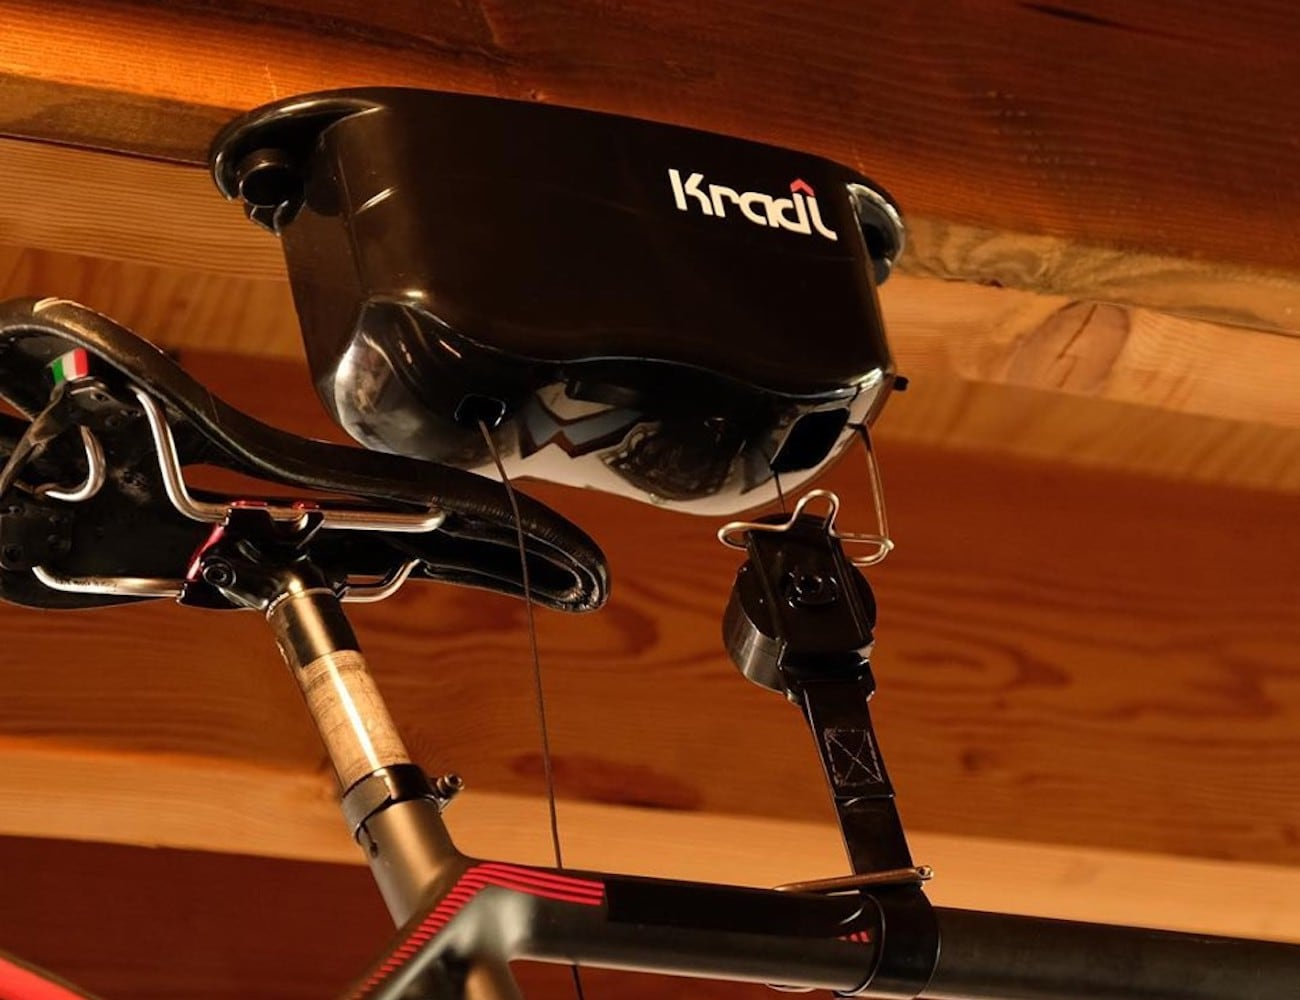 Kradl Bike Lift Storage System lets you easily access your bike whenever you need it